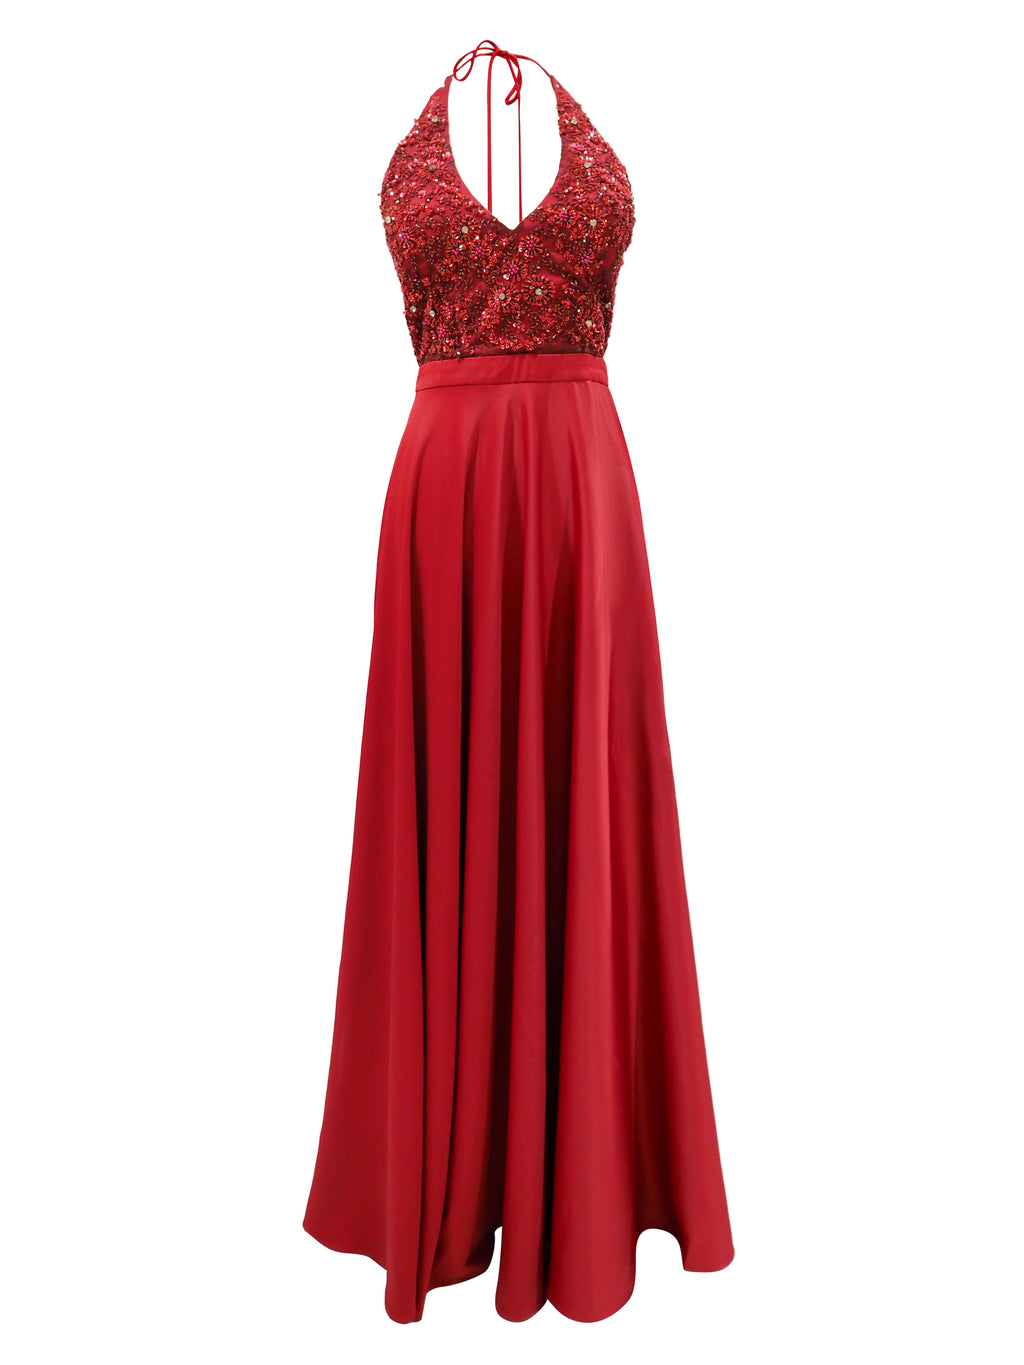 Juliette dark red satin a-line dress with beaded top